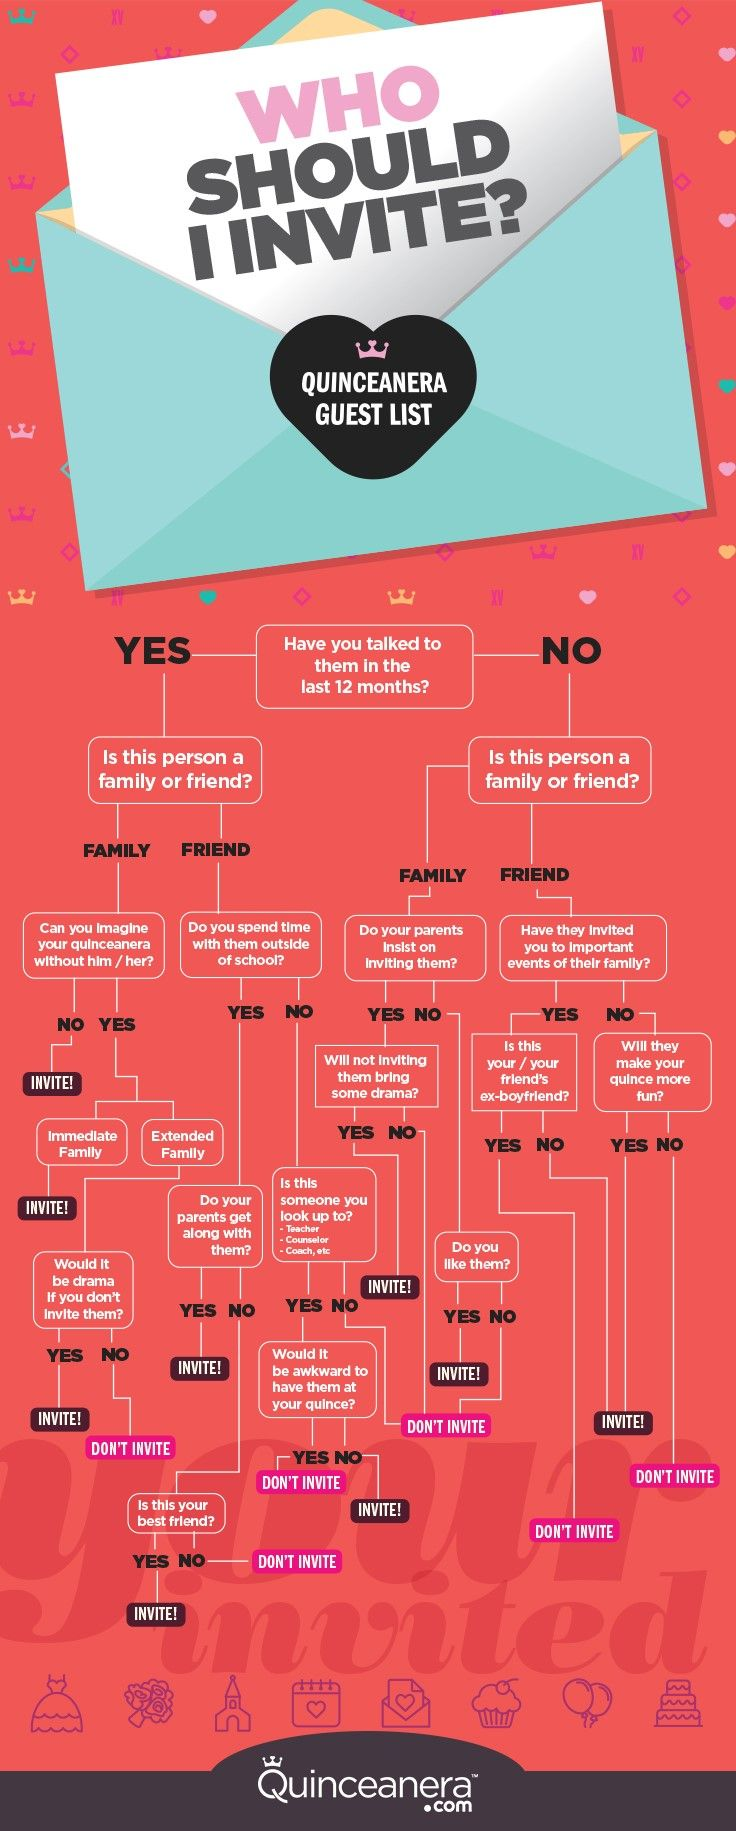 Now here is a guide on how to decide who's in and who's out of your Quinceanera guest list. - See more at: http://www.quinceanera.com/planning/quinceanera-guest-list-whos-whos/?utm_source=pinterest&utm_medium=social&utm_campaign=planning-quinceanera-guest-list-whos-whos#sthash.Z3WIHXit.dpuf